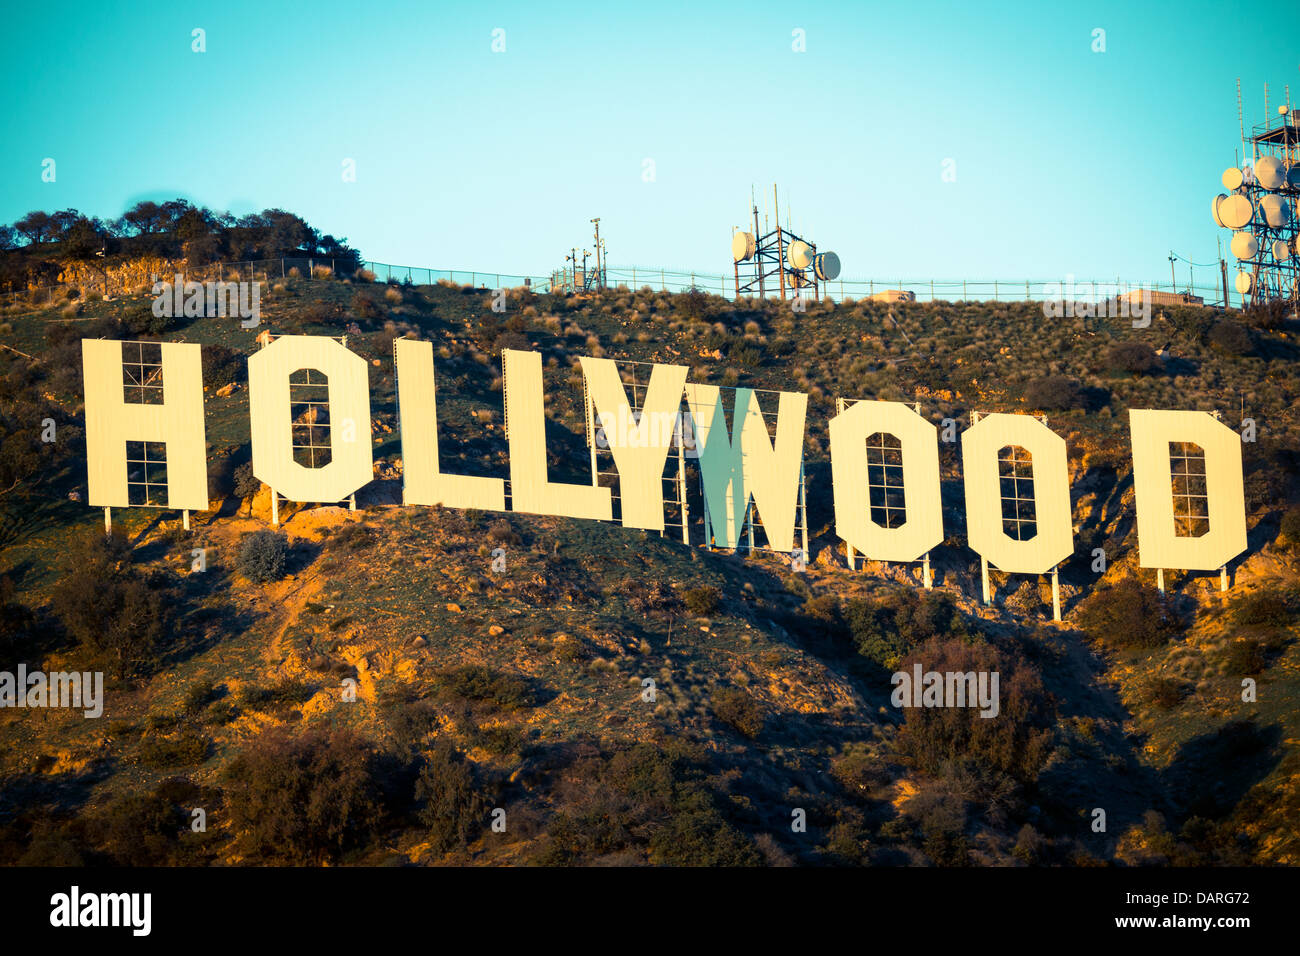 L'iconico Hollywood Sign con un cielo blu sullo sfondo Immagini Stock